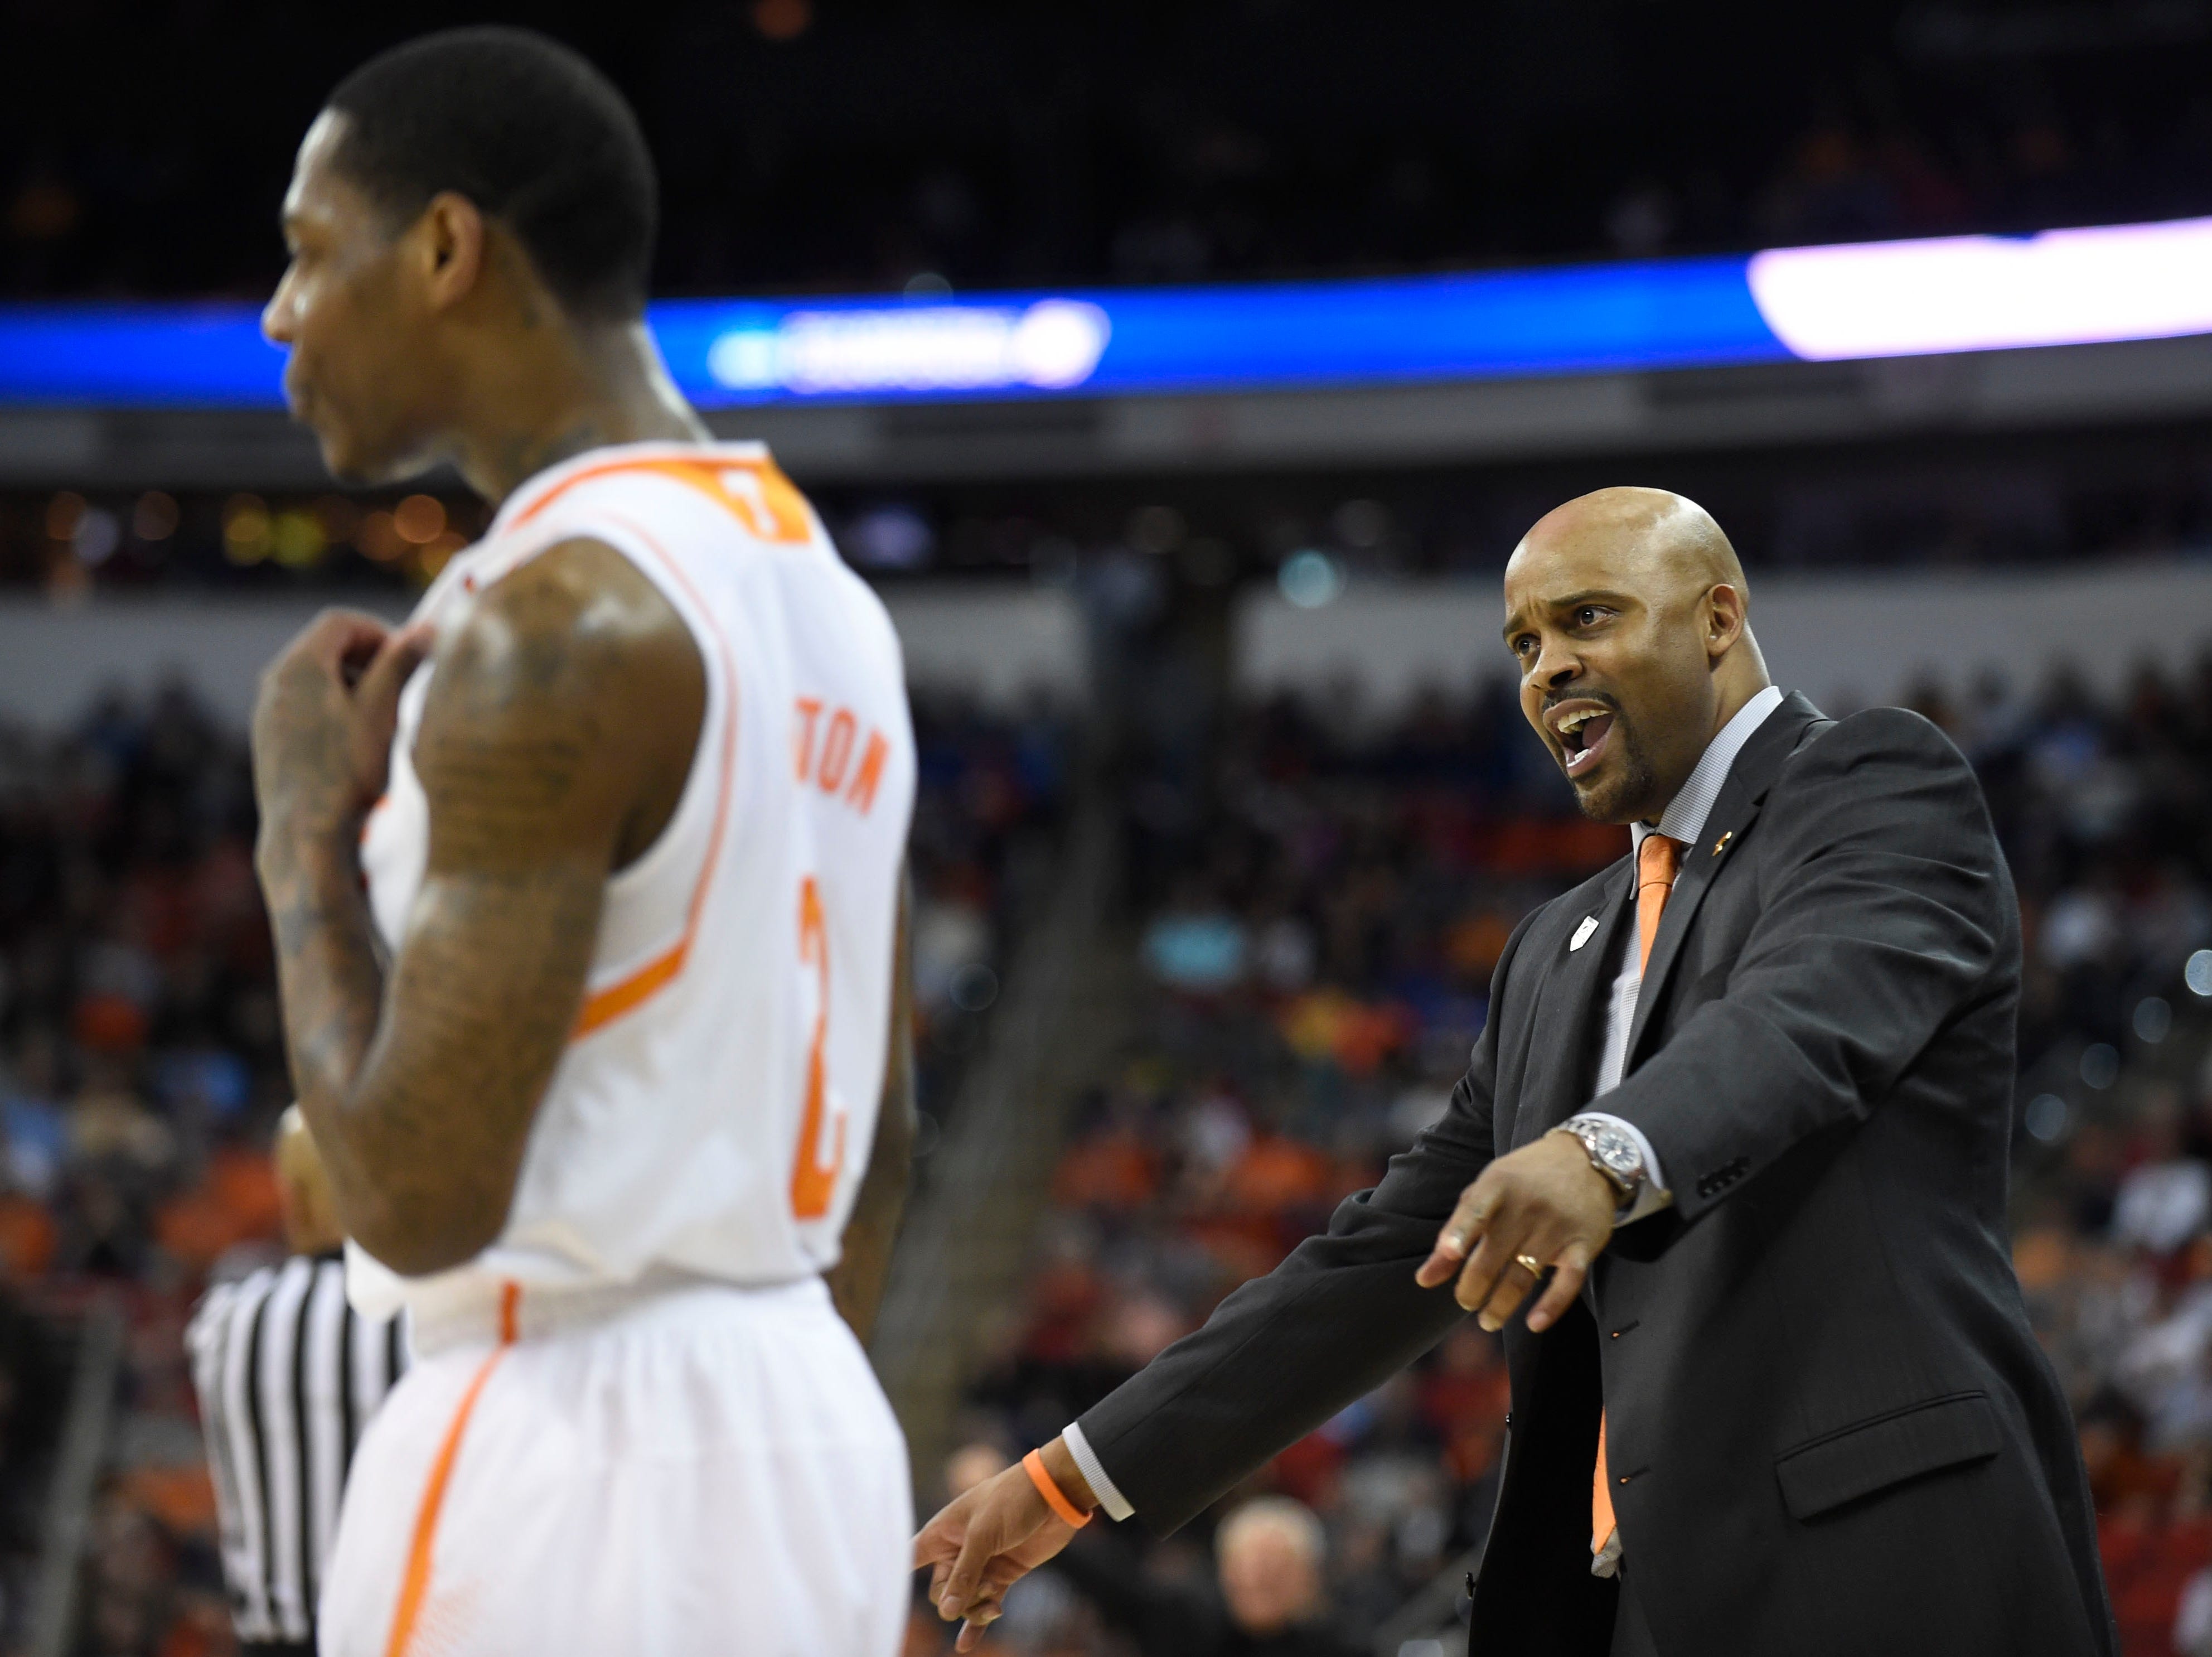 Tennessee head coach Cuonzo Martin talks to his players from the sideline during the second half of a third-round NCAA tournament game at the PNC Arena in Raleigh, N.C. on Sunday, March 23, 2014. Tennessee won 83-63.